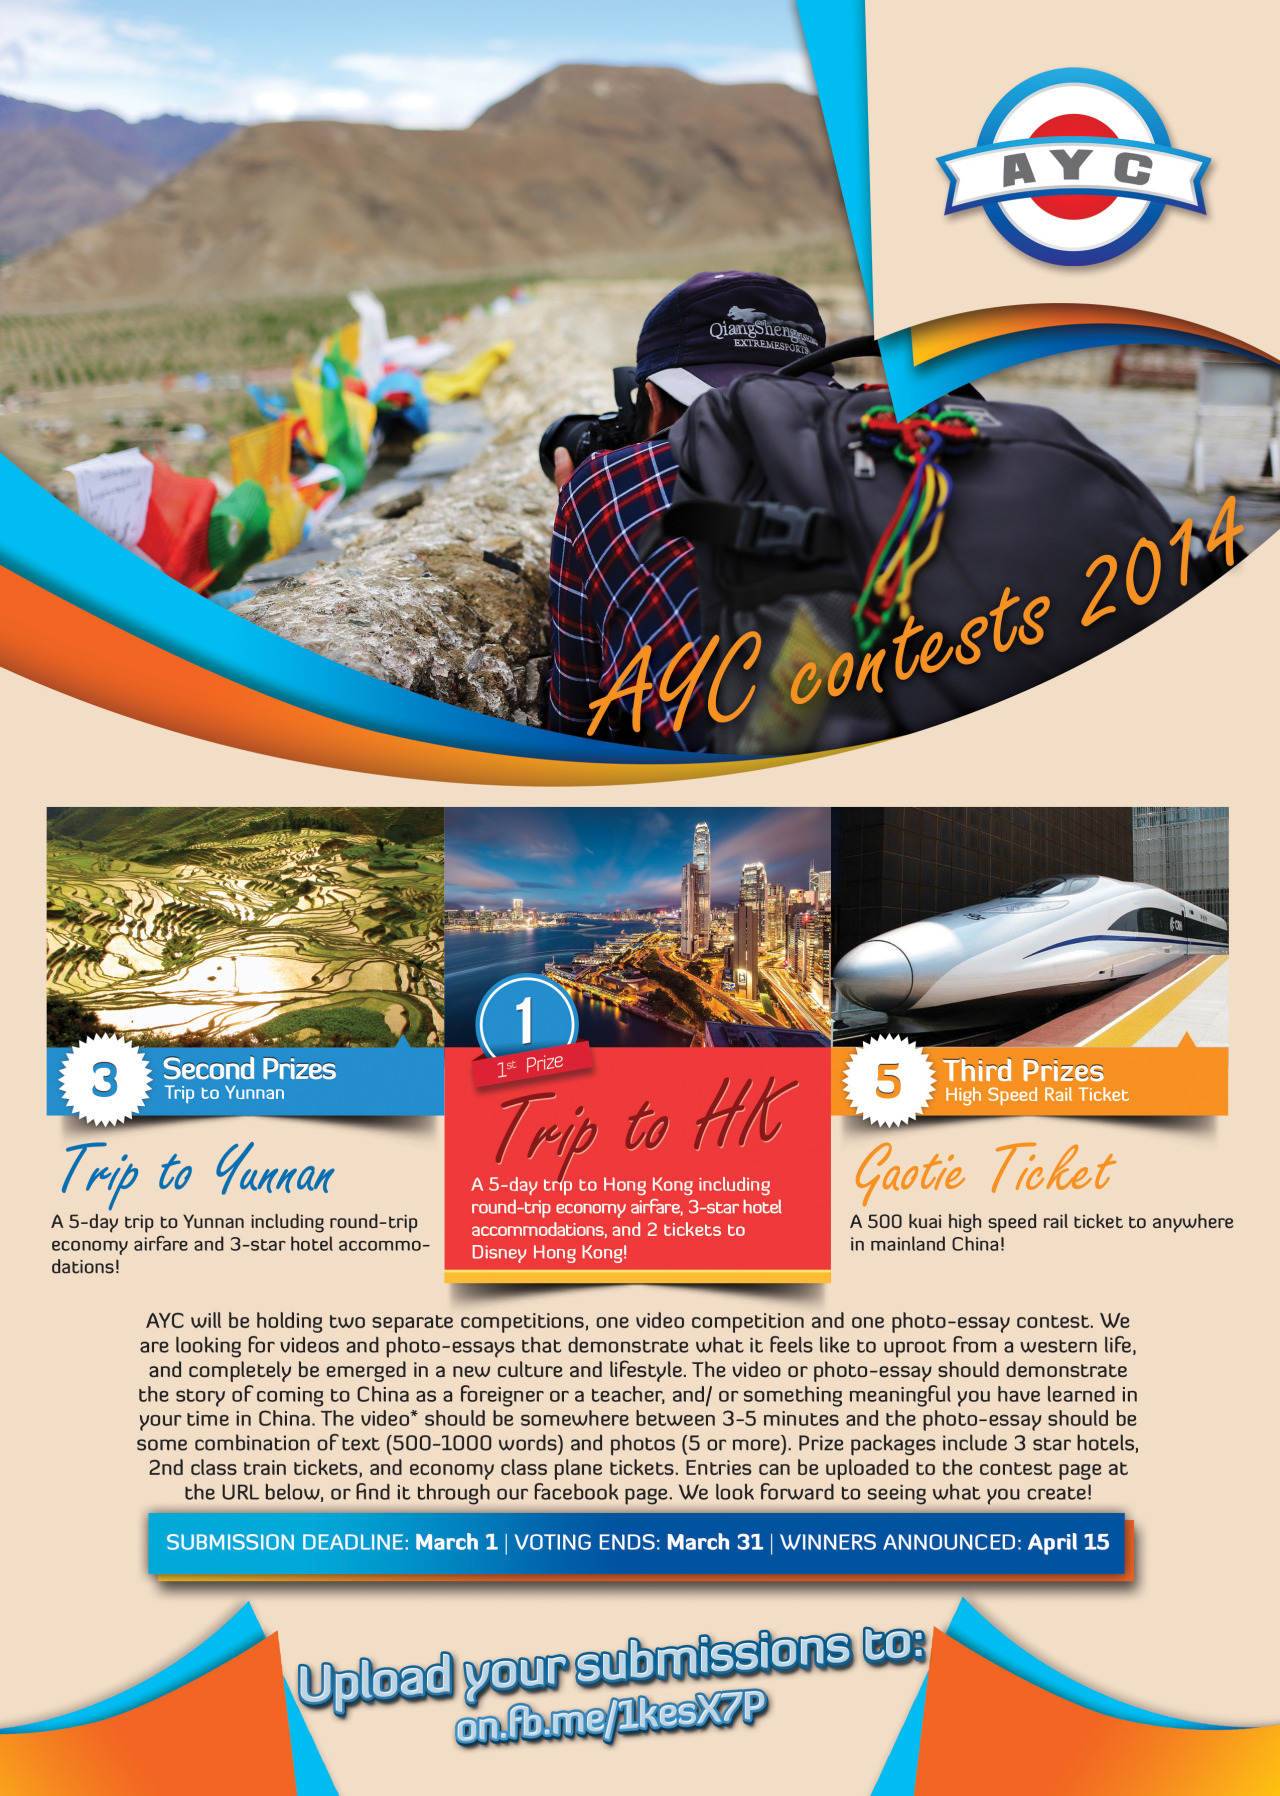 The AYC 2014 Photo-Essay & Video competition is well, and on its way! Make sure to send in your contest submissions before the March 1st deadline! Click  here  to find out more information about the competition. We look forward to receiving your submission!